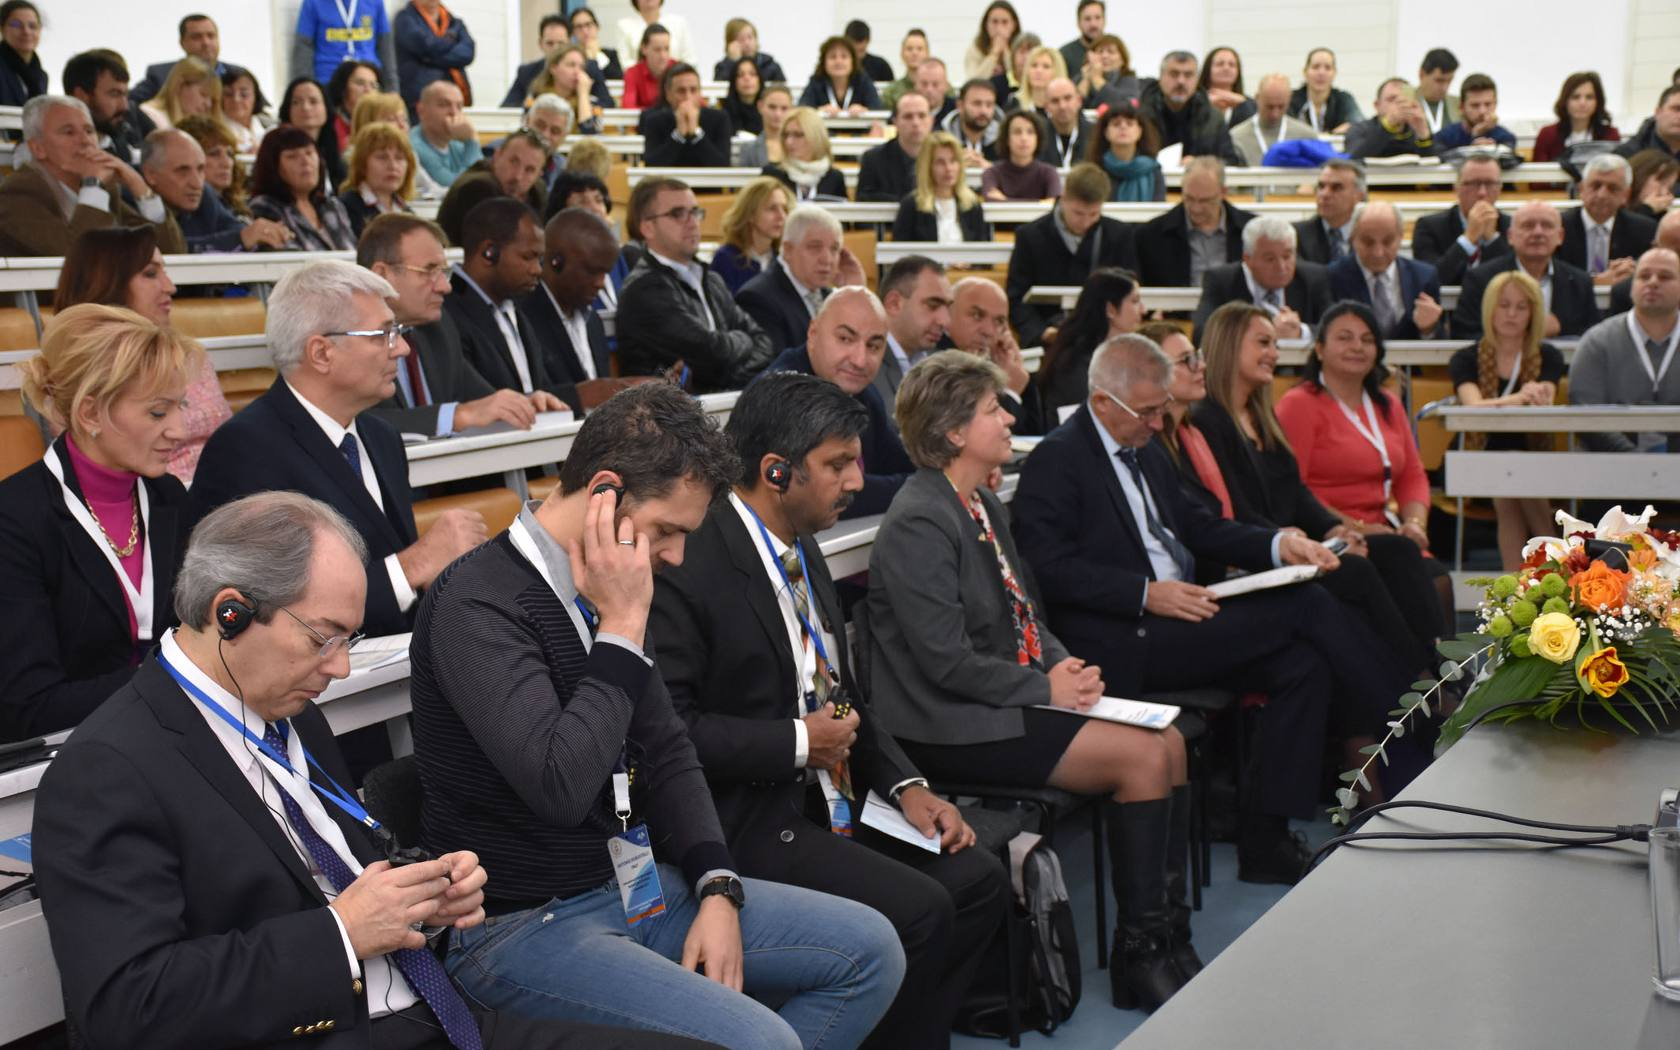 Delegates at the International Congress of Applied Sports Sciences, Sofia